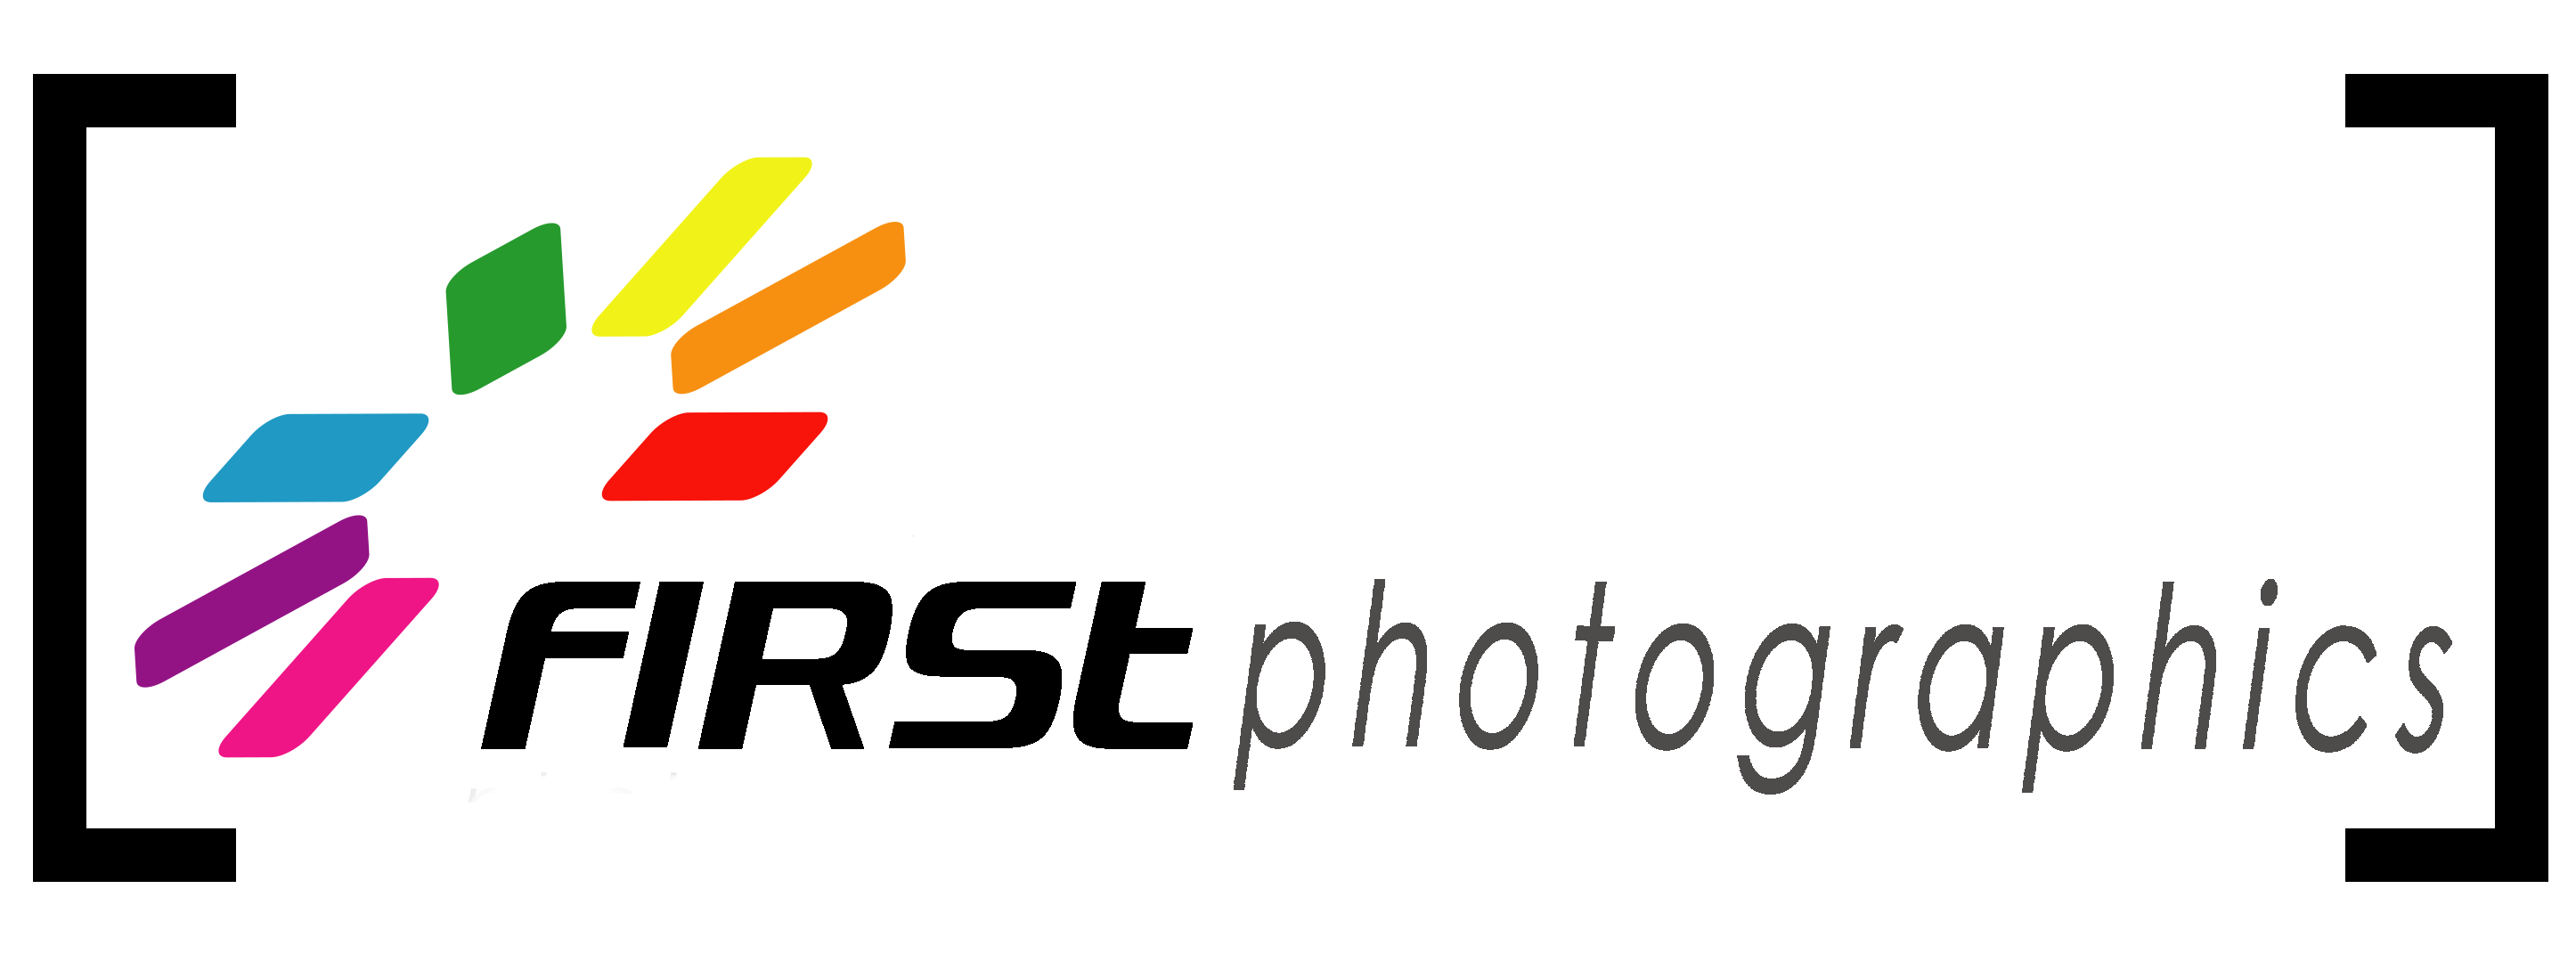 First Photographics